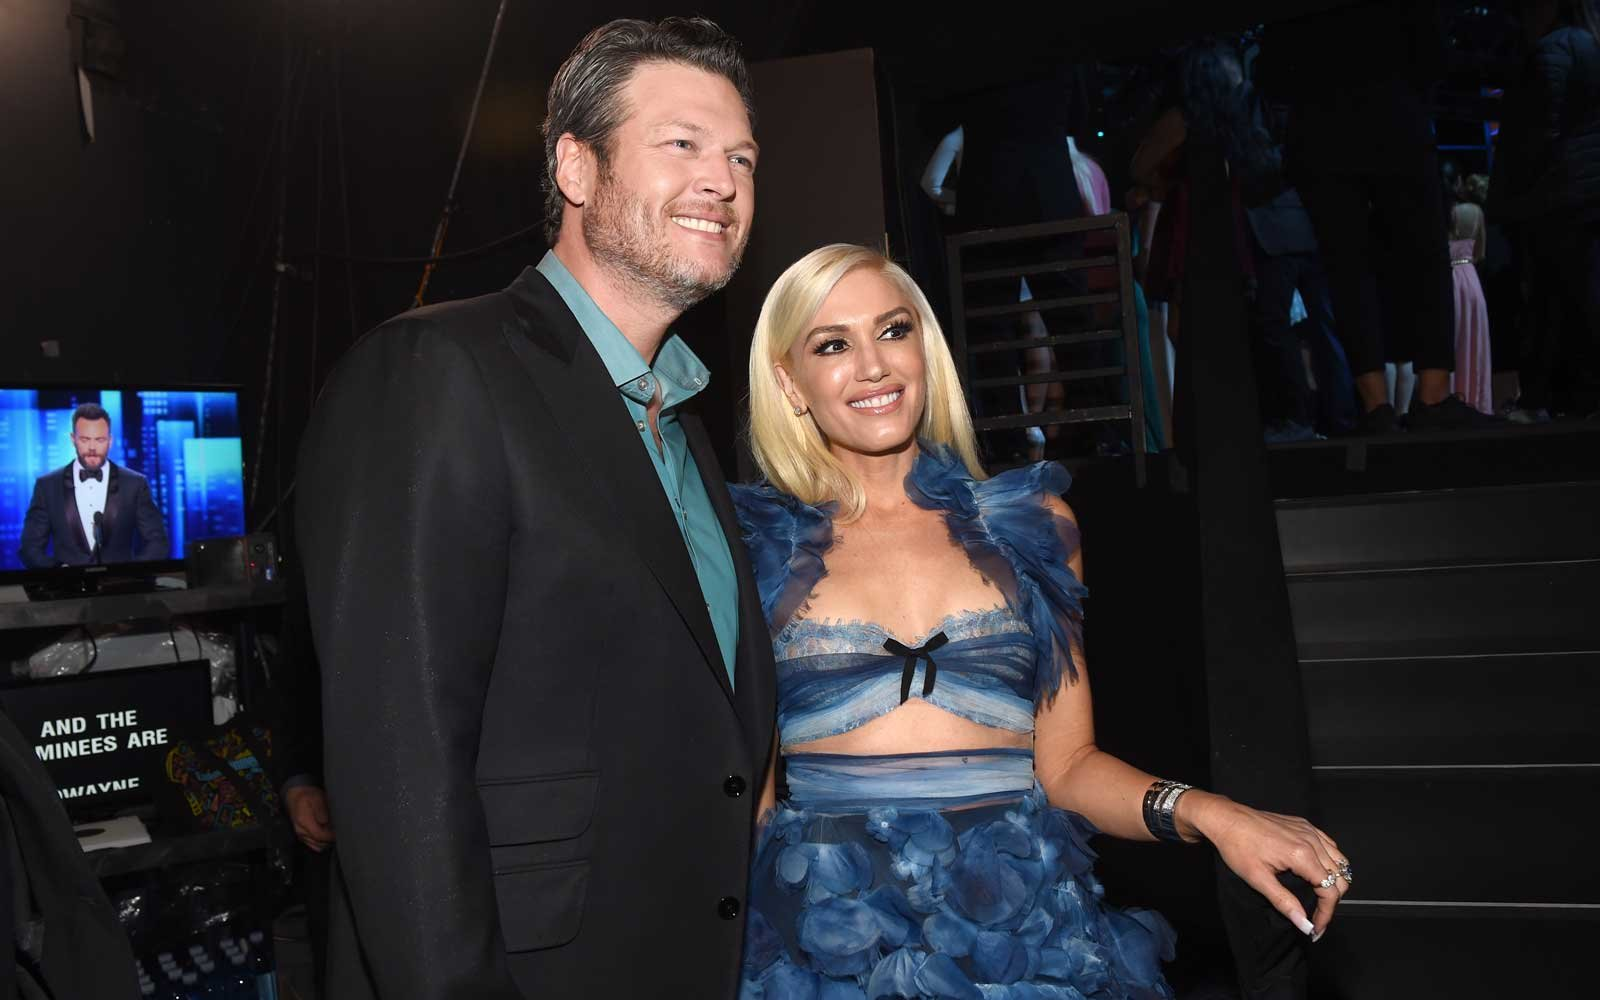 Blake Shelton and Gwen Stefani backstage